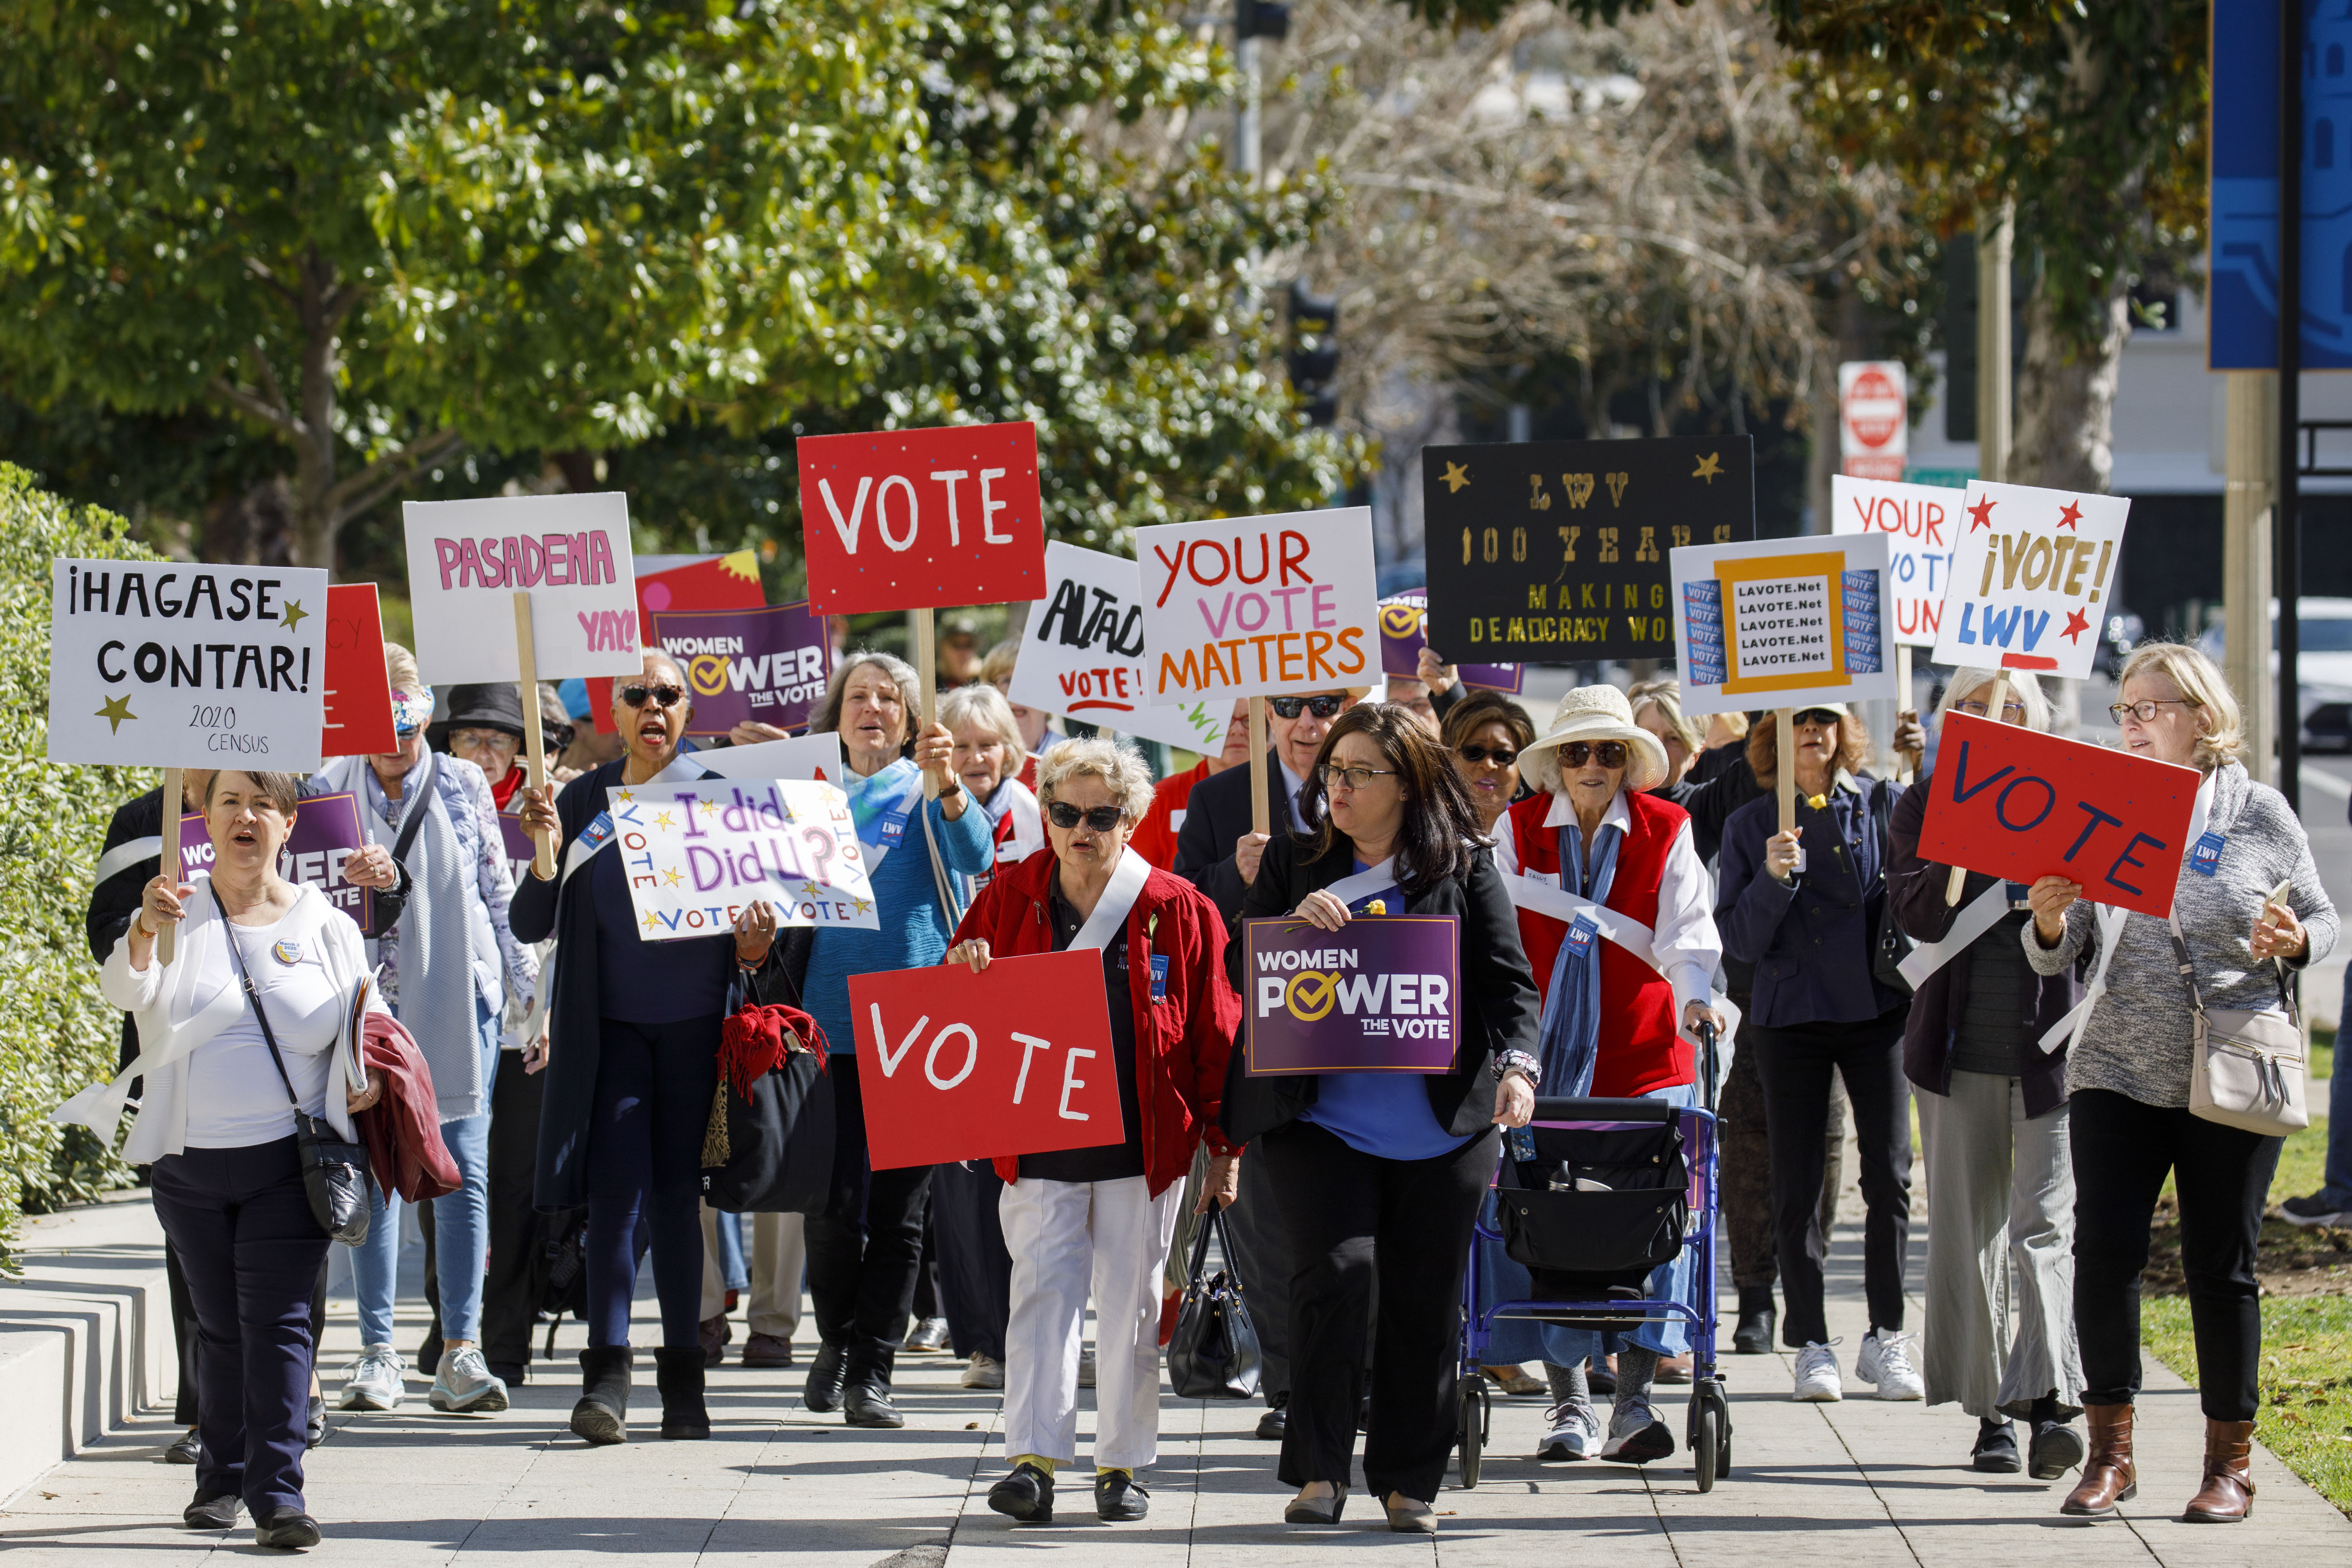 Group marching withVote signs